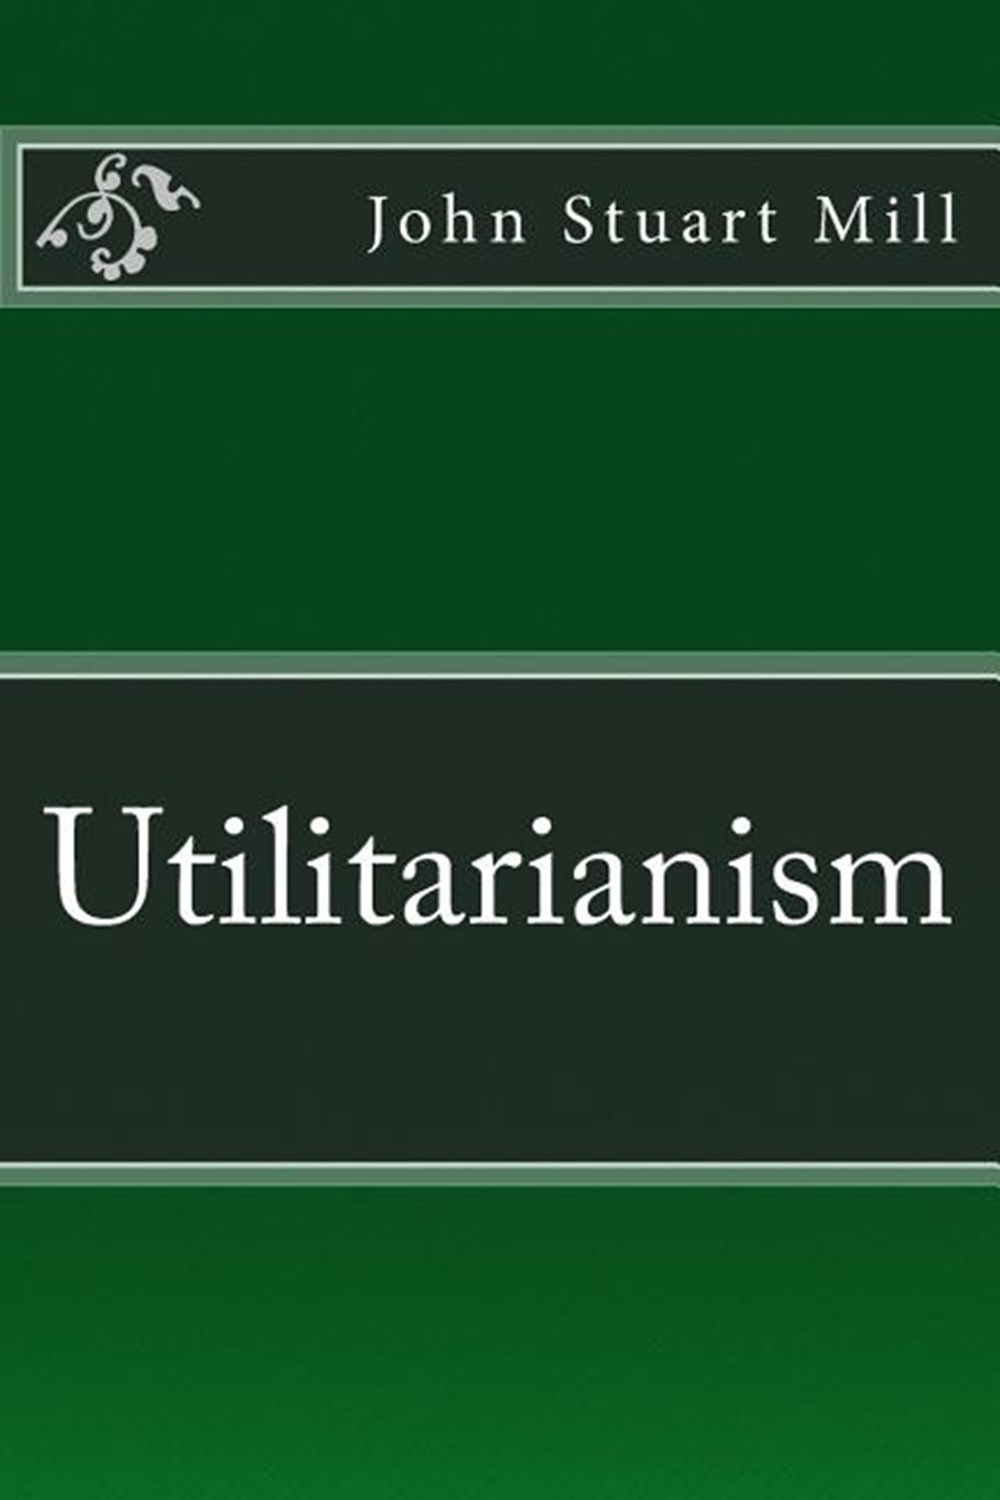 Utilitarianism The original edition of 1863